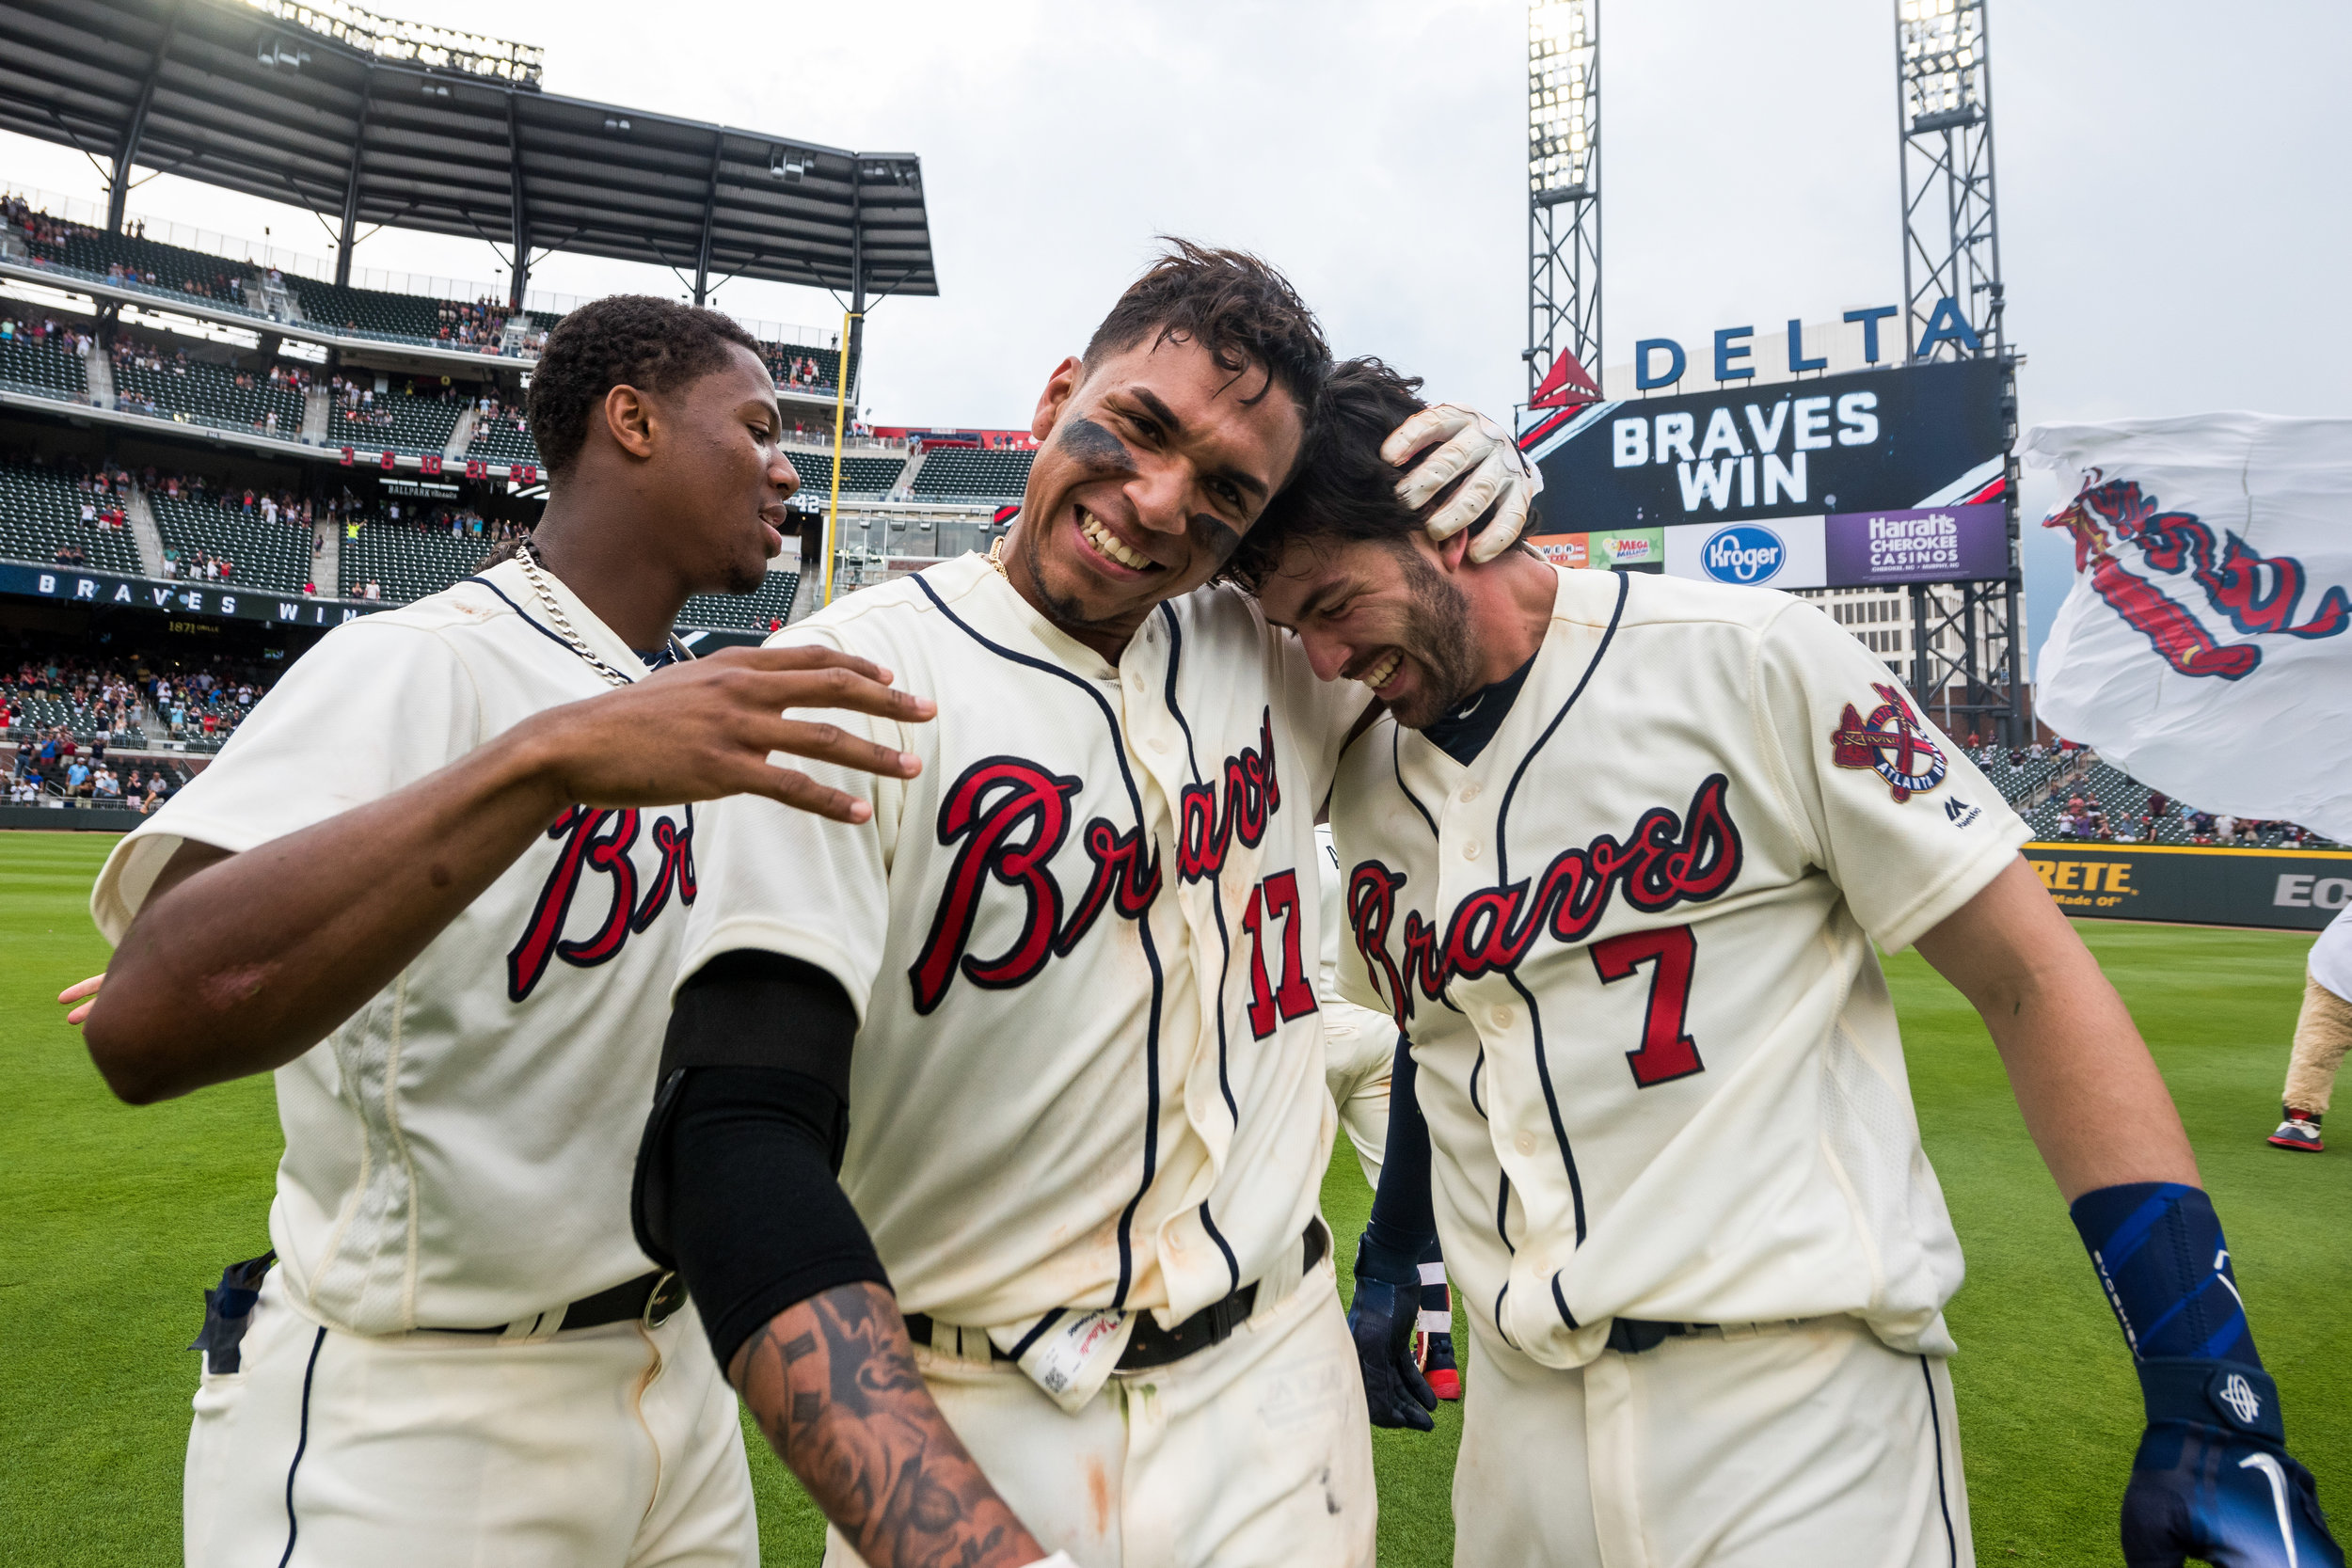 ATLANTA, GA - MAY 20: Dansby Swanson #7 and Johan Camargo #16 of the Atlanta Braves embrace after Inciarte hits a walk off run against the Miami Marlins at SunTrust Park on May 20, 2018, in Atlanta, Georgia. The Braves won on a walk off 10-9.